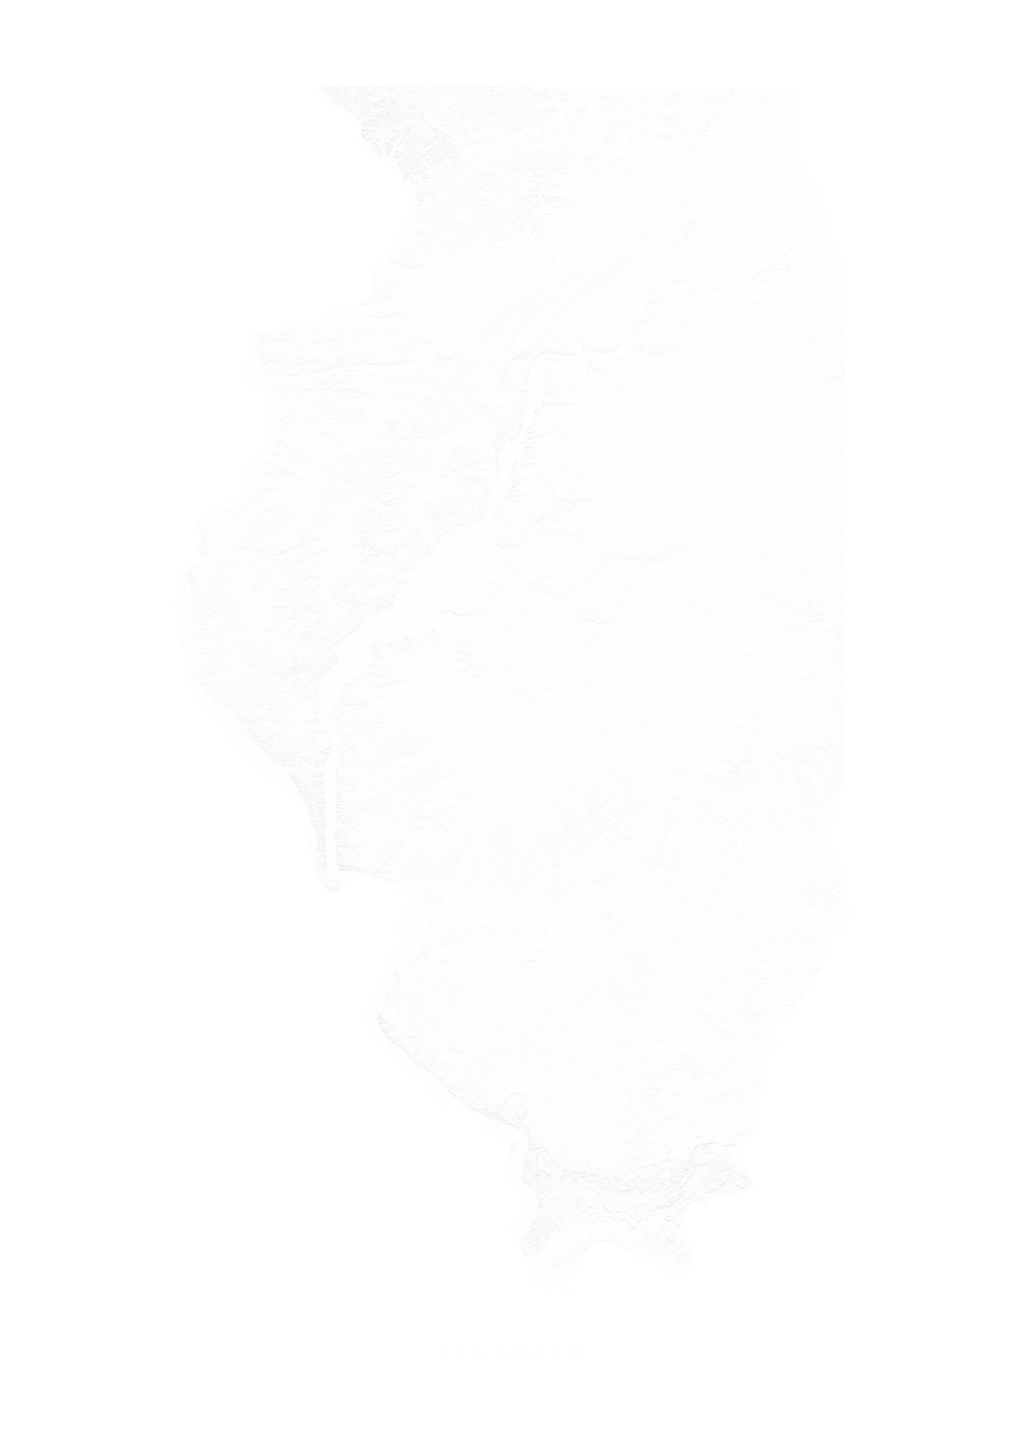 Illinois wall map